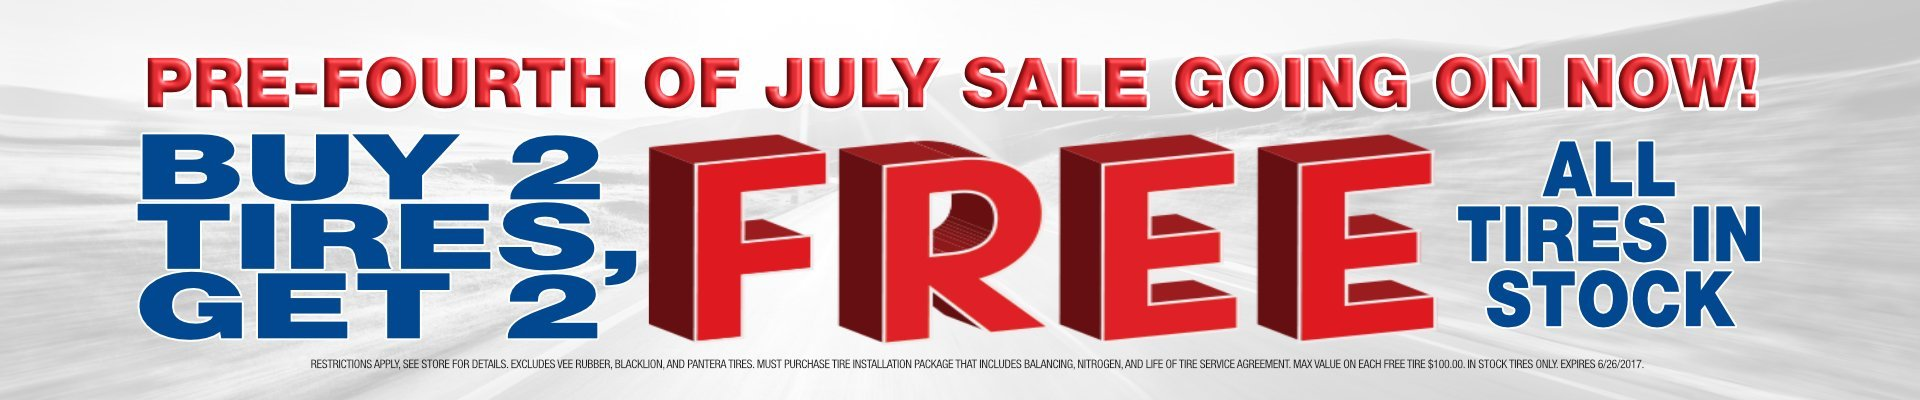 July 4th specials Buy 2 Tires Get 2 Tires Free- Discount Tire Centers